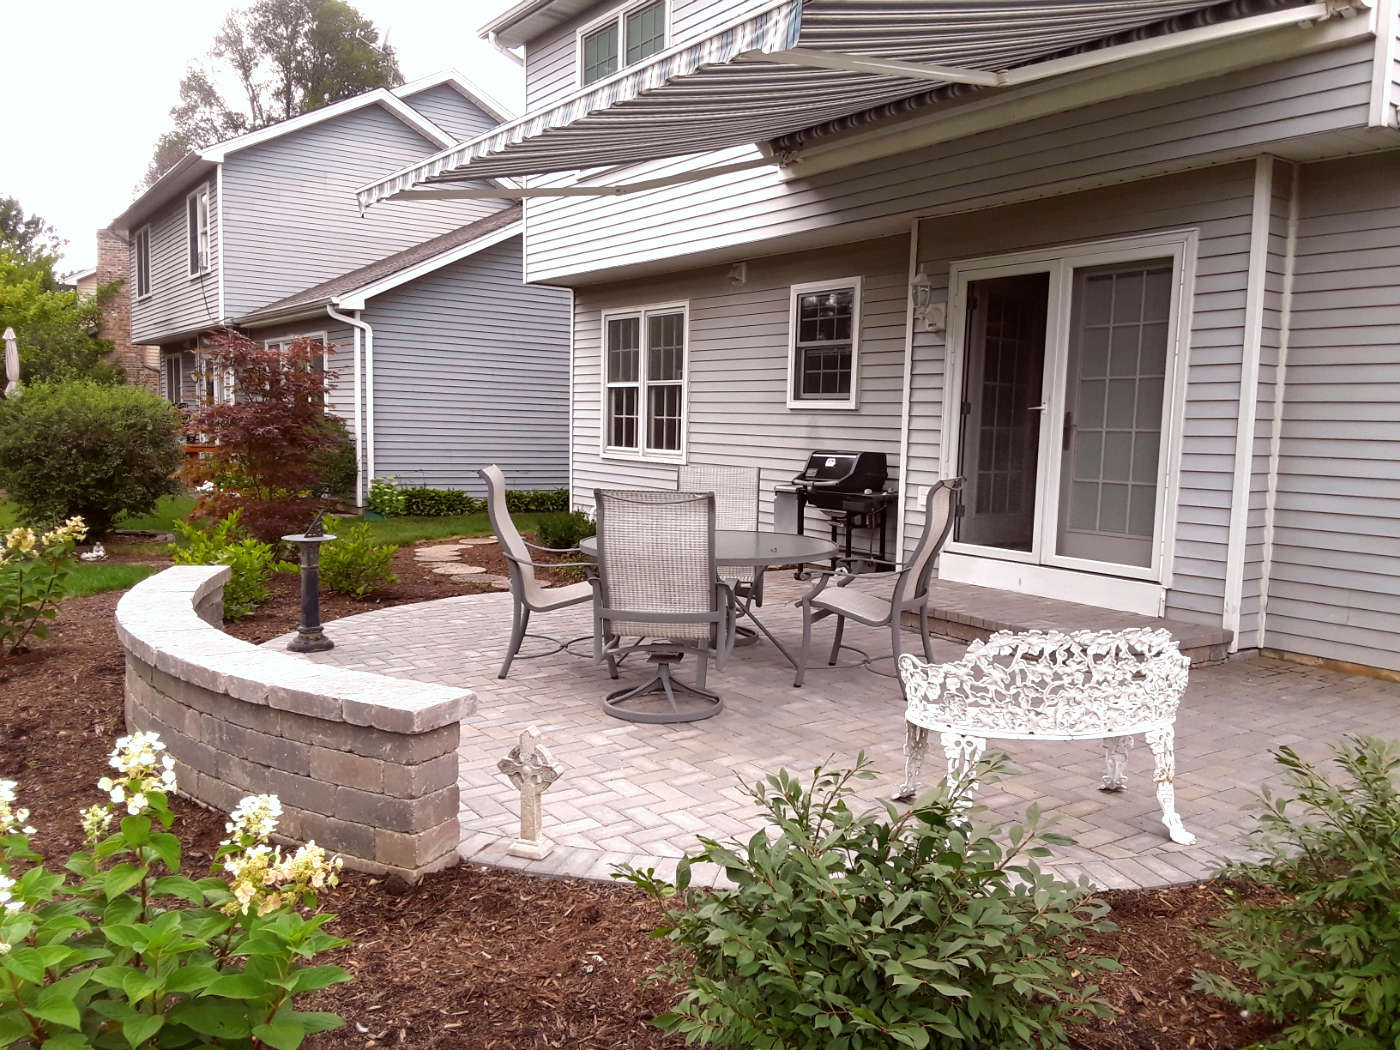 Belgard Paver Patio Design by Wheaton, IL Patio Designer Thumbnail